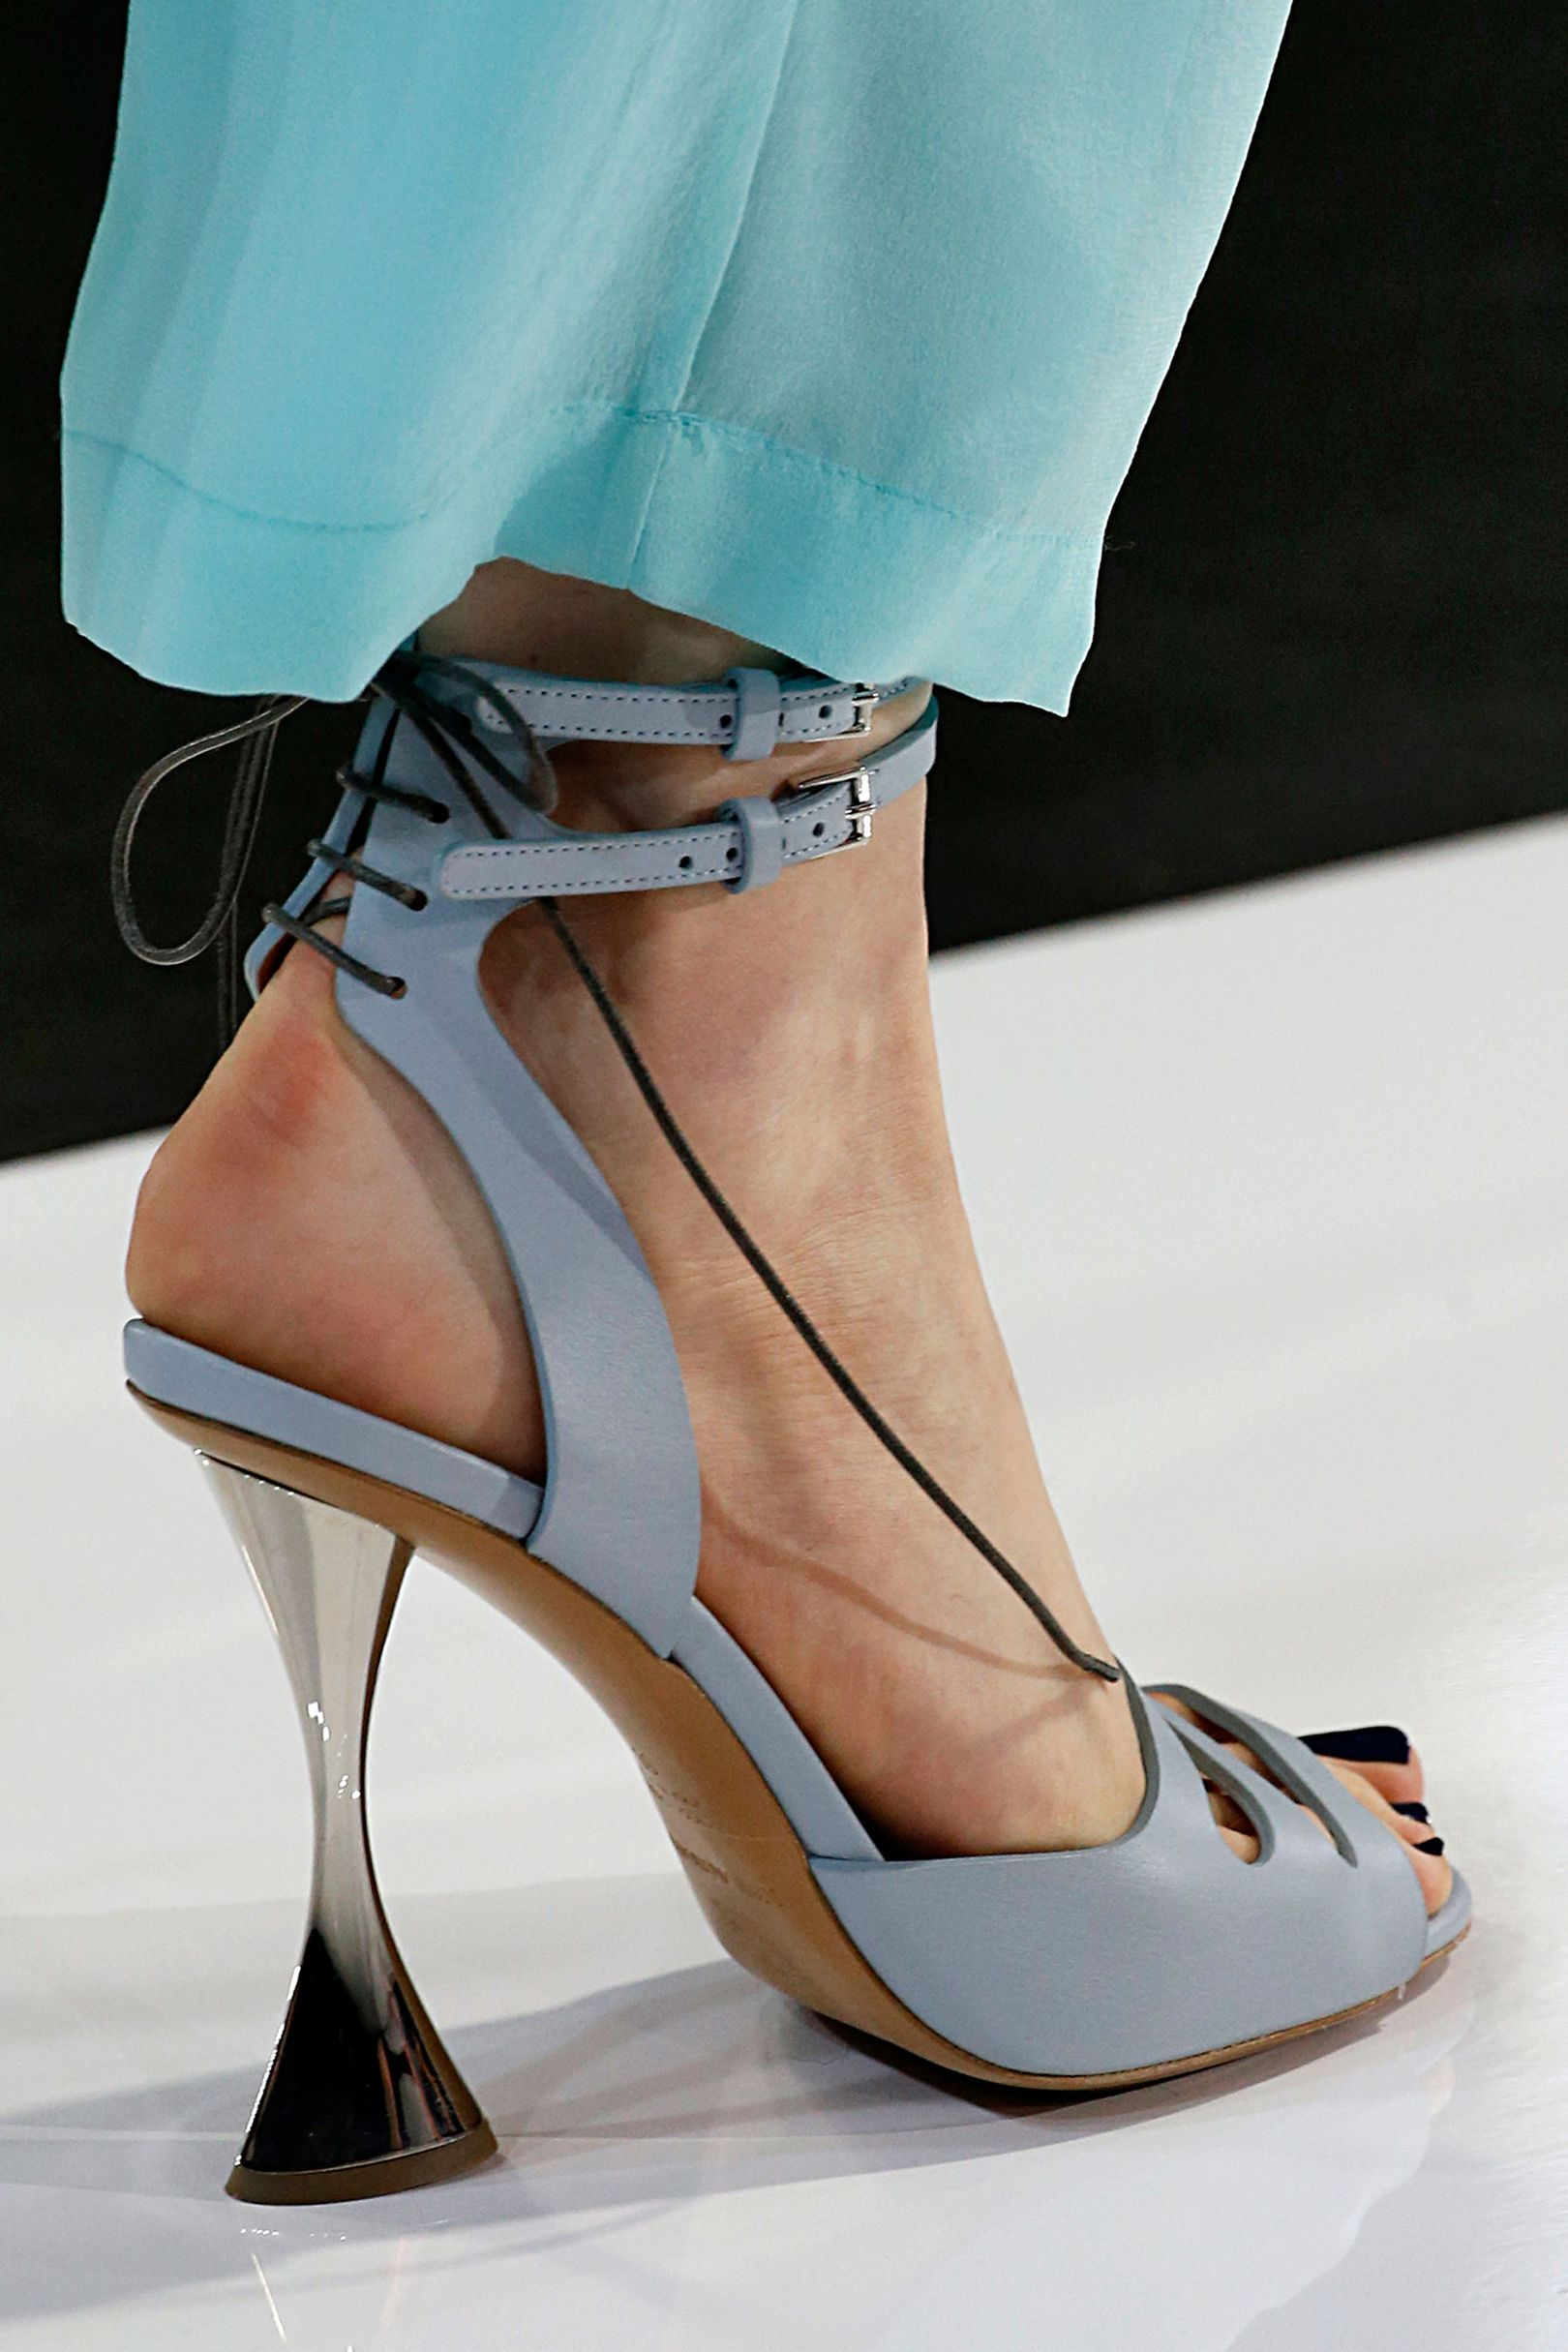 08fa1928890 Vogue s Ultimate Shoe Trend Guide Spring Summer 2018